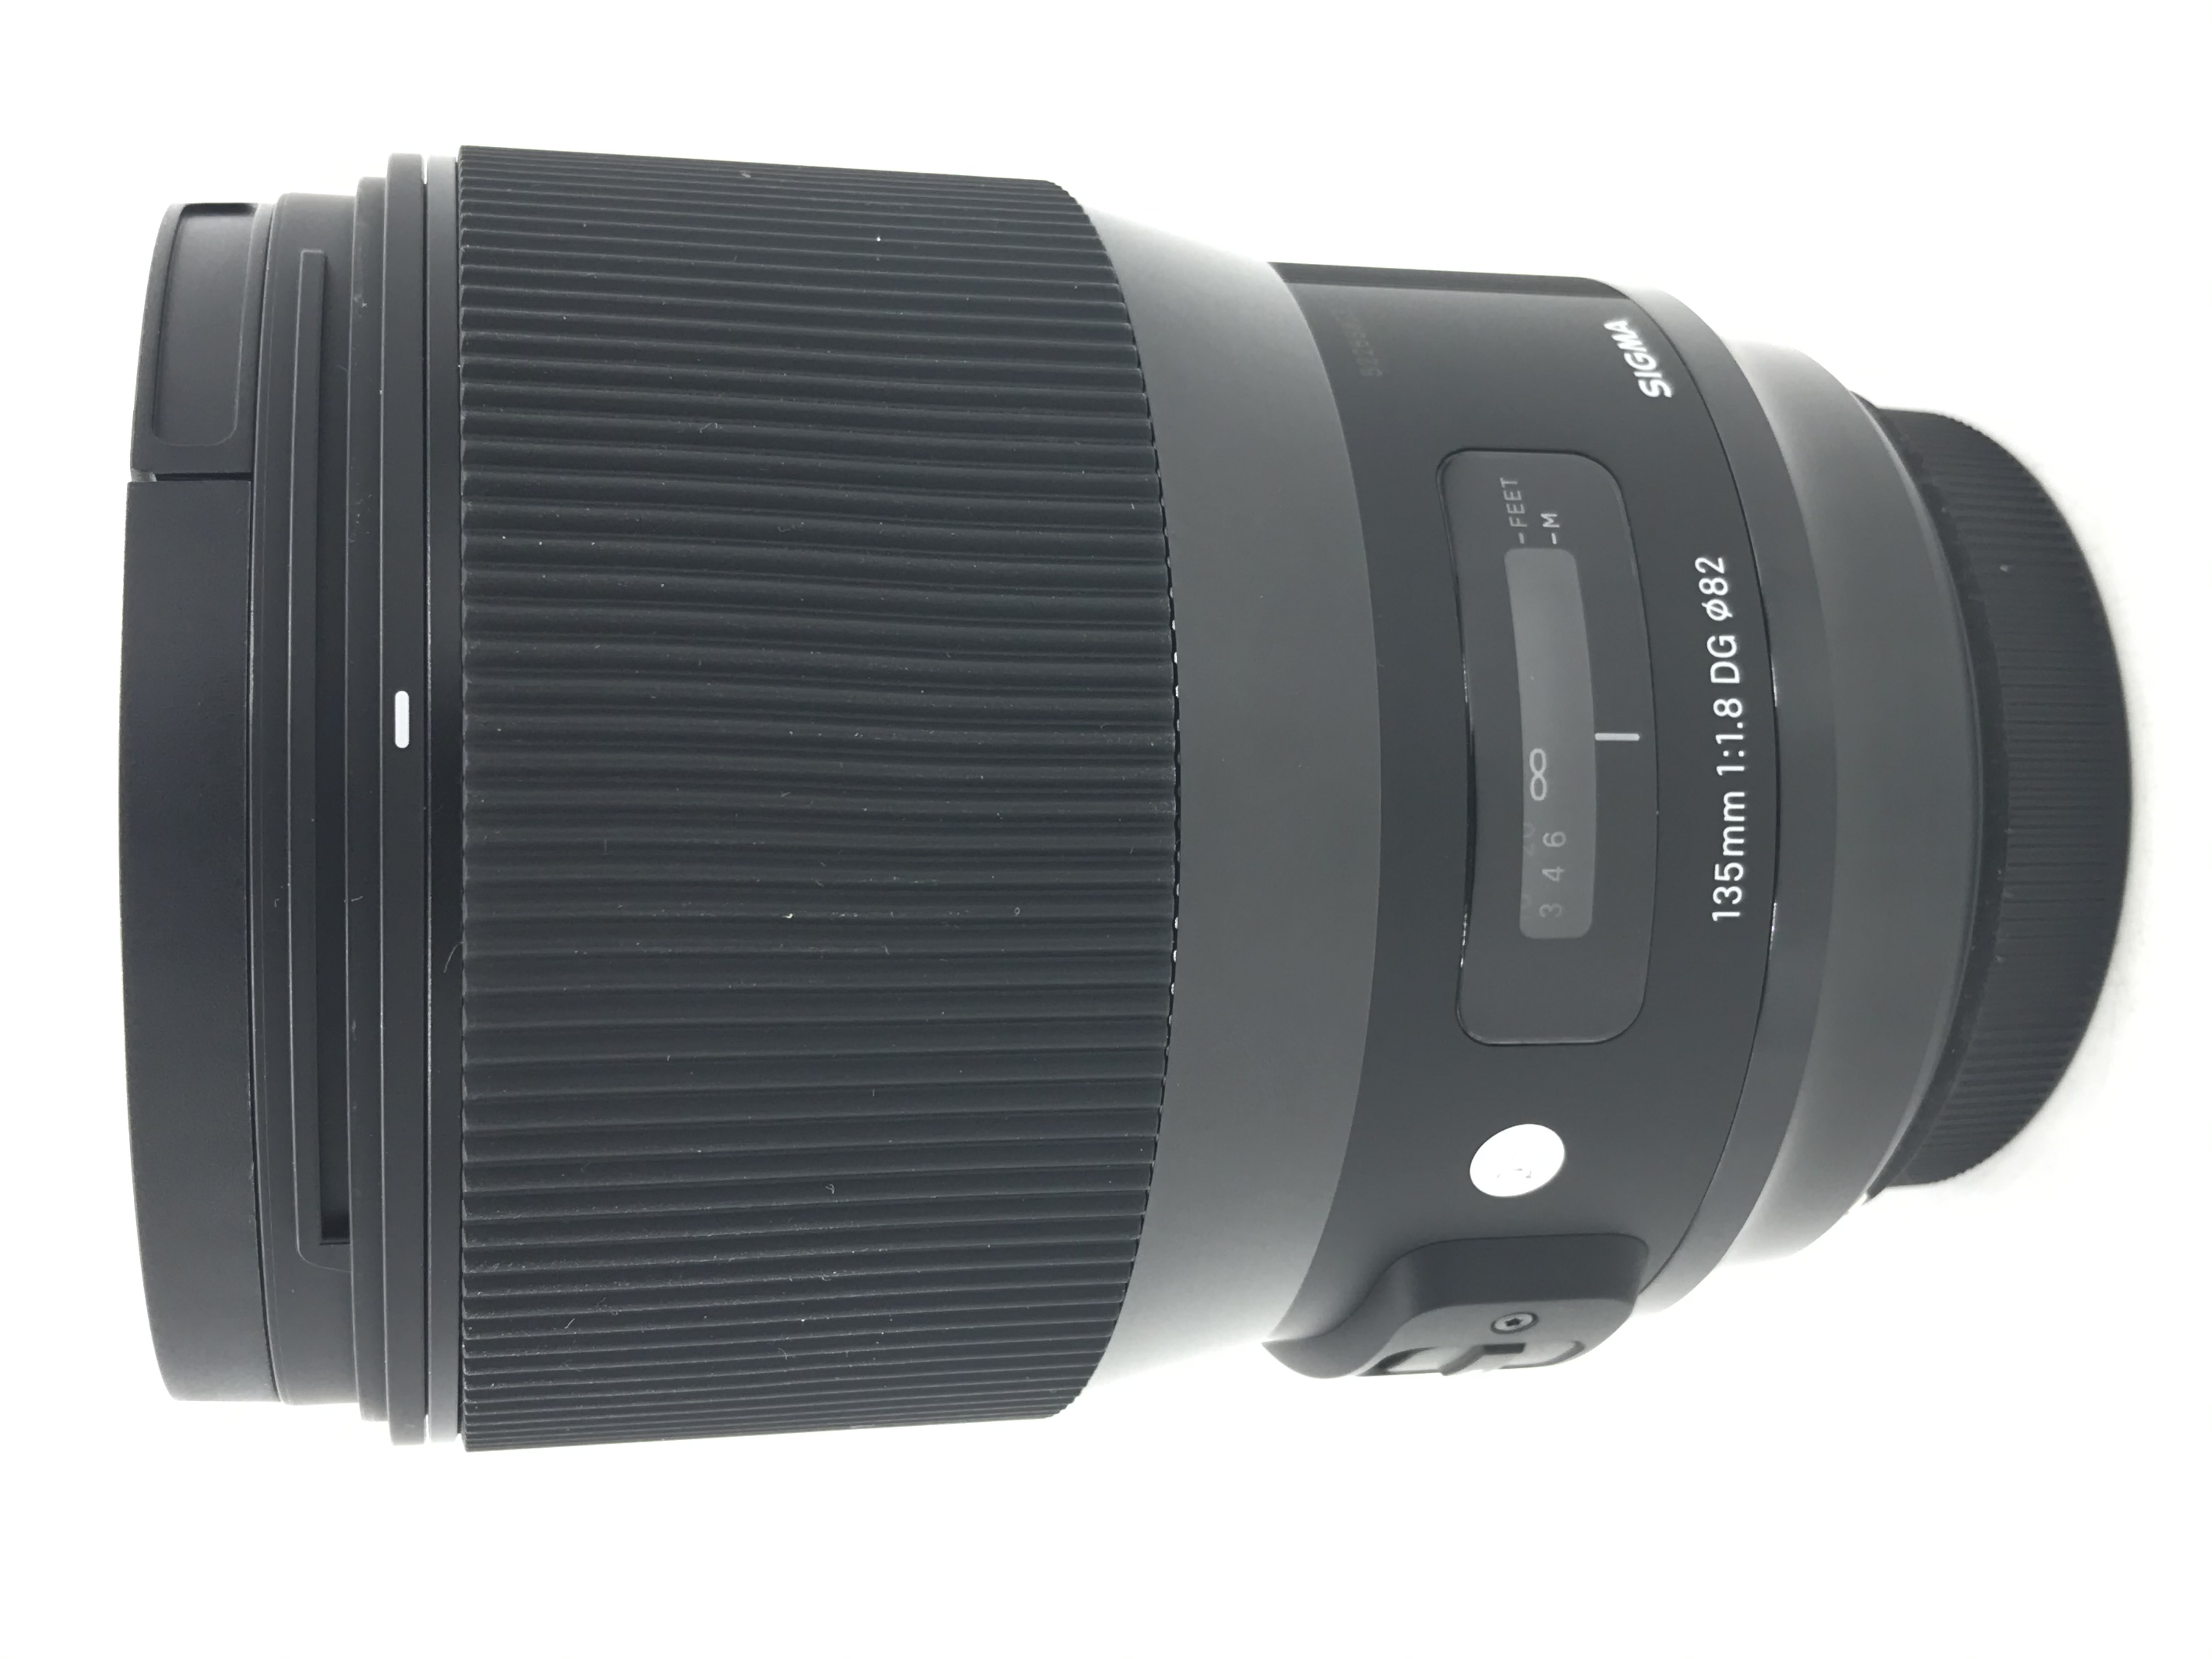 USED Sigma 135mm f1.8 DG HSM for CANON